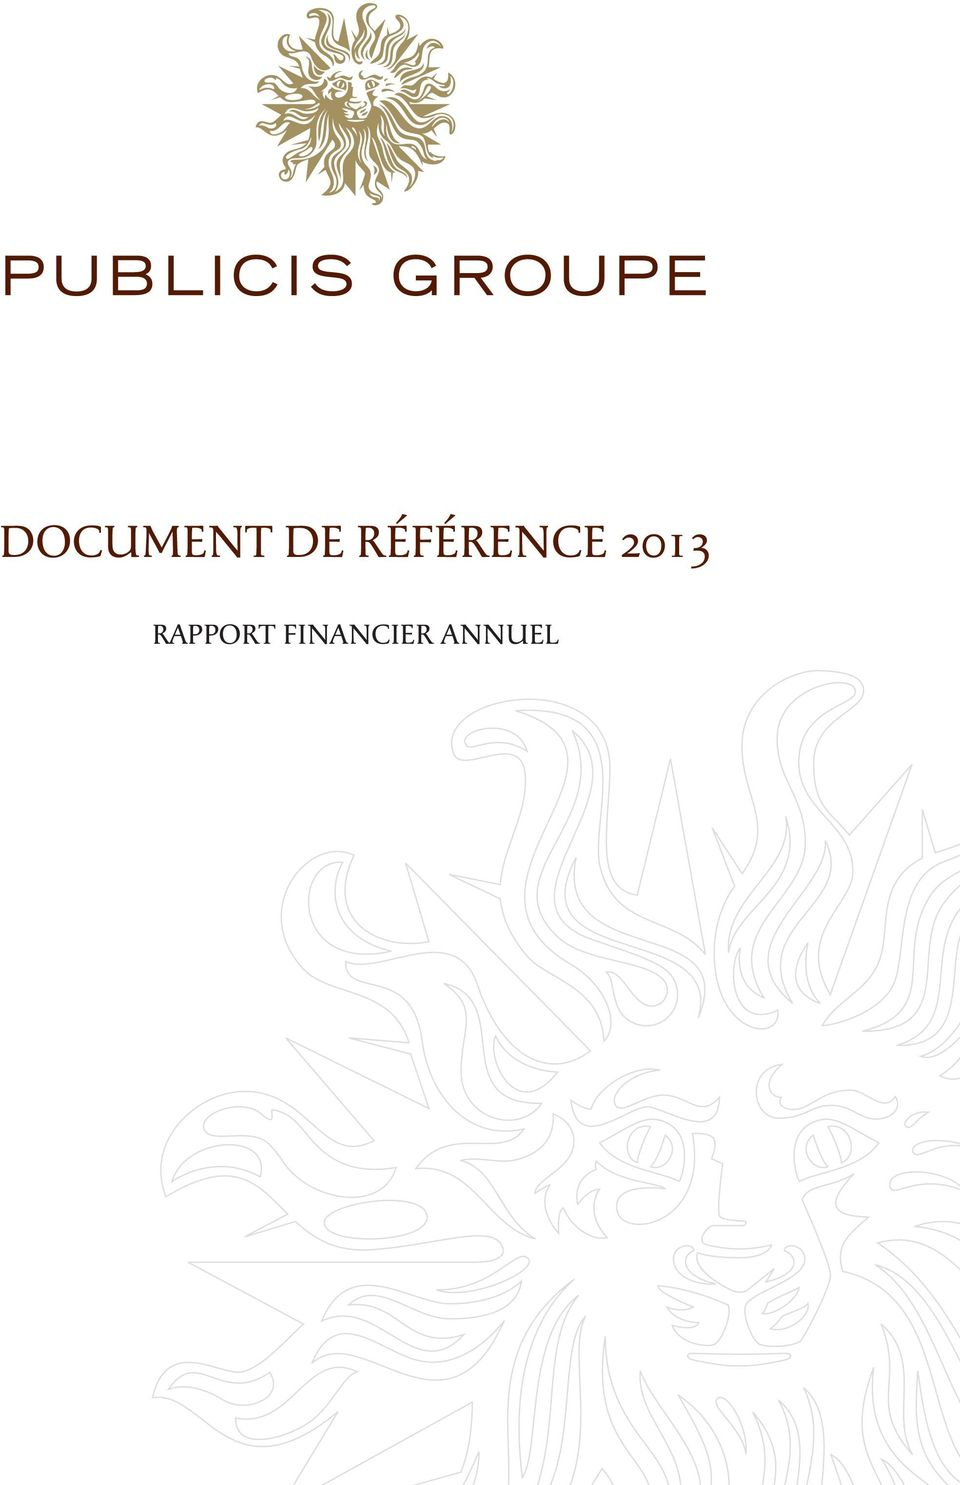 2013 RAPPORT